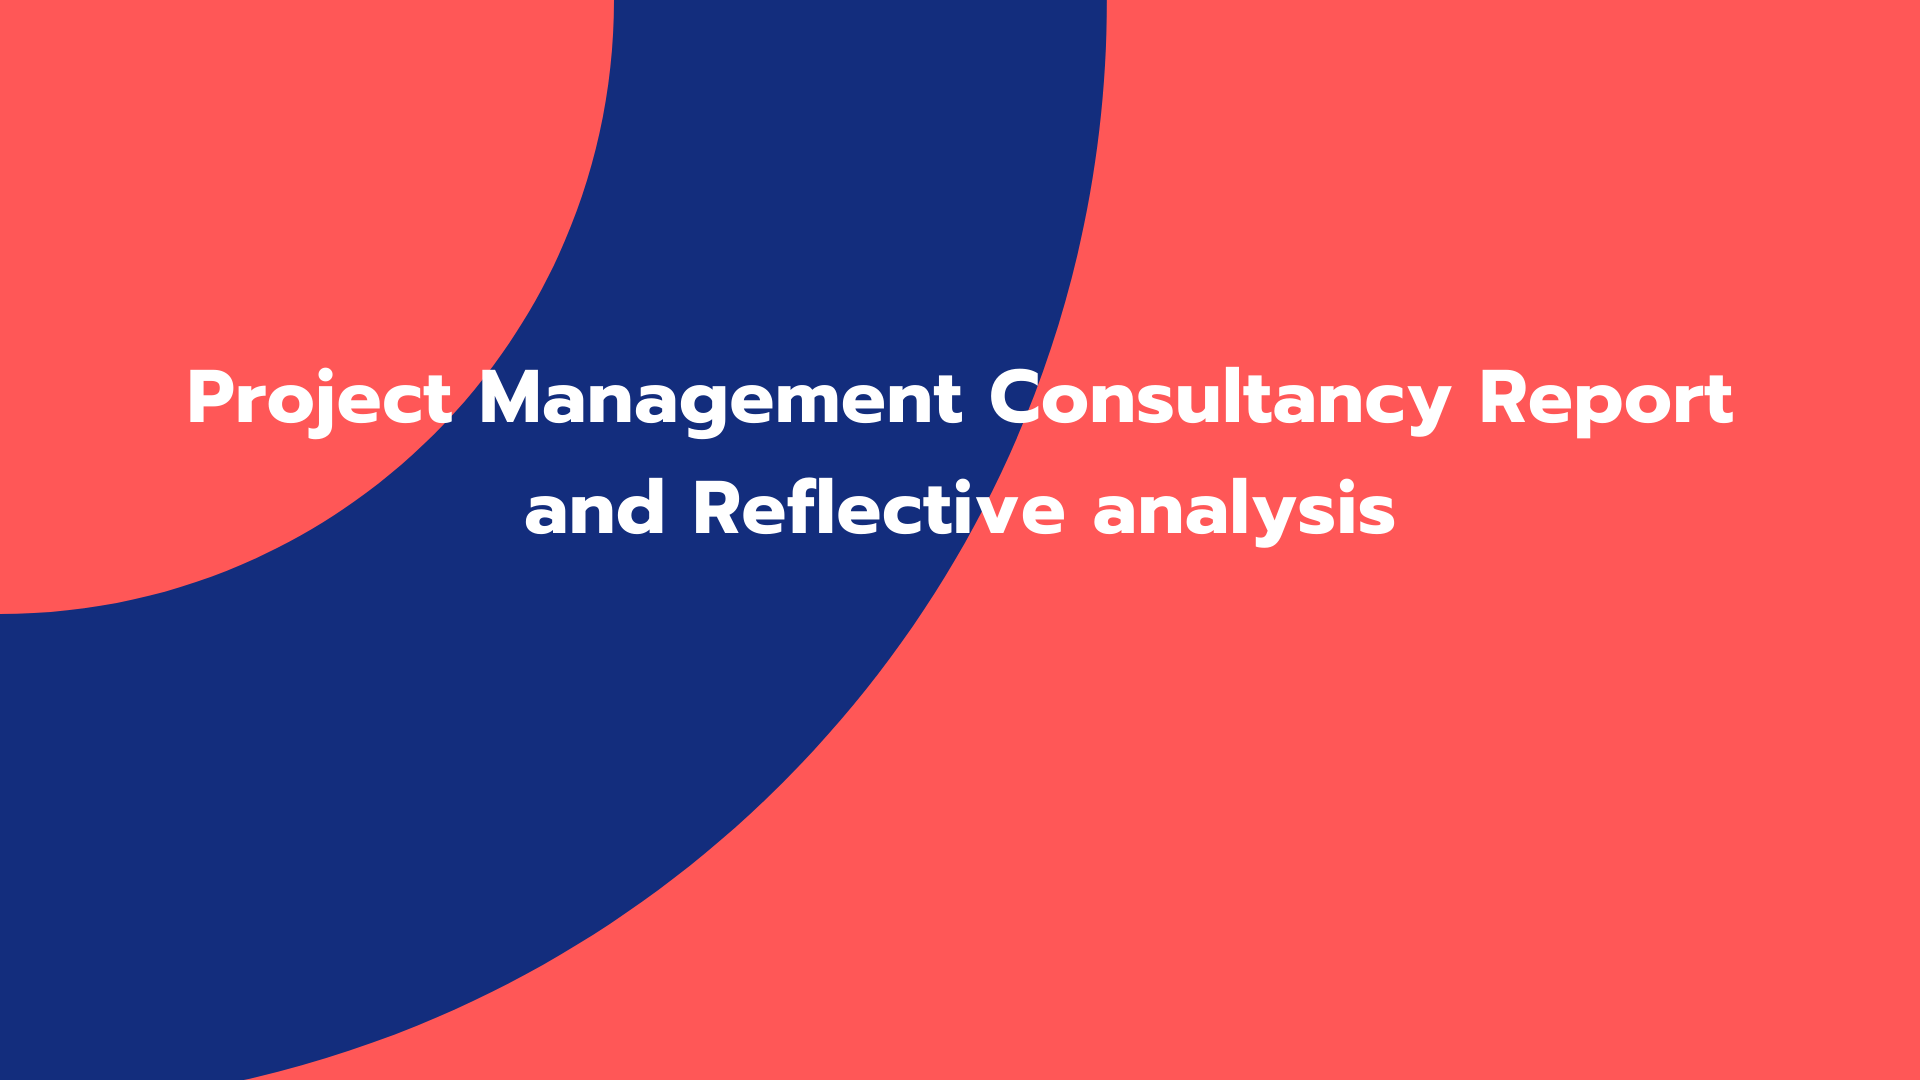 Project Management Consultancy Report and Reflective analysis